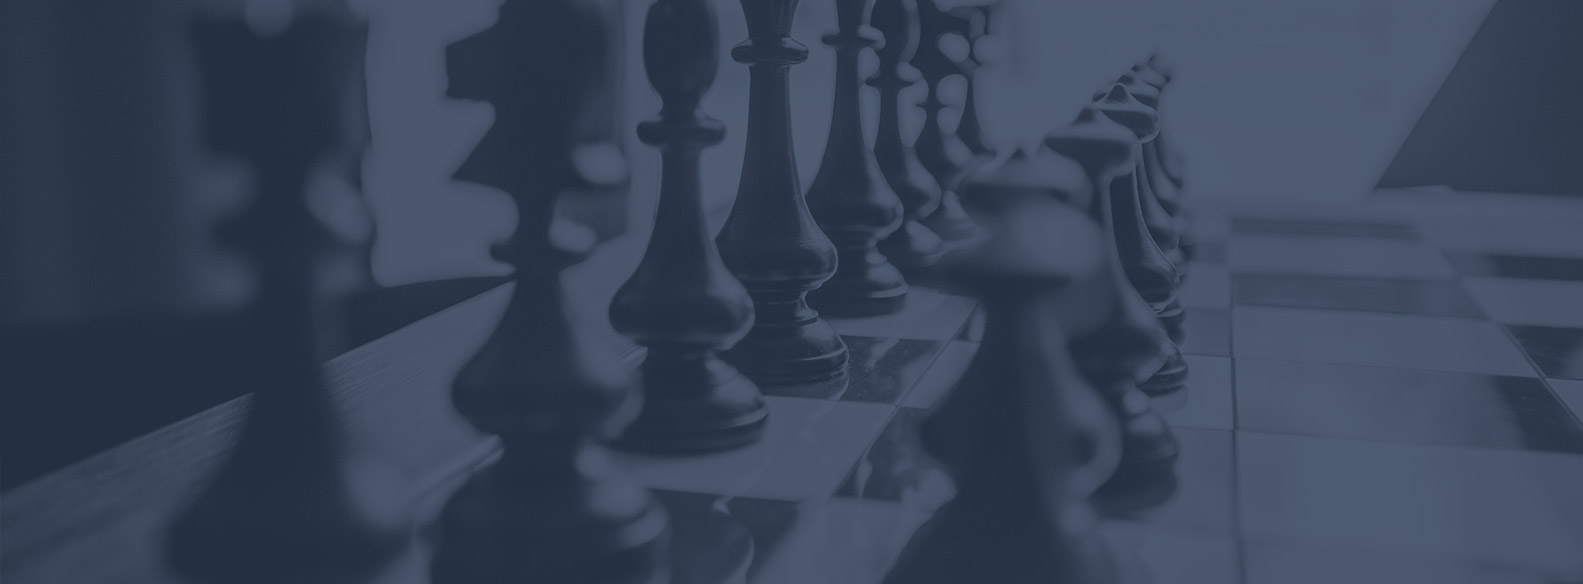 Chess pieces representing making your next move with due diligence consulting from Diligentiam